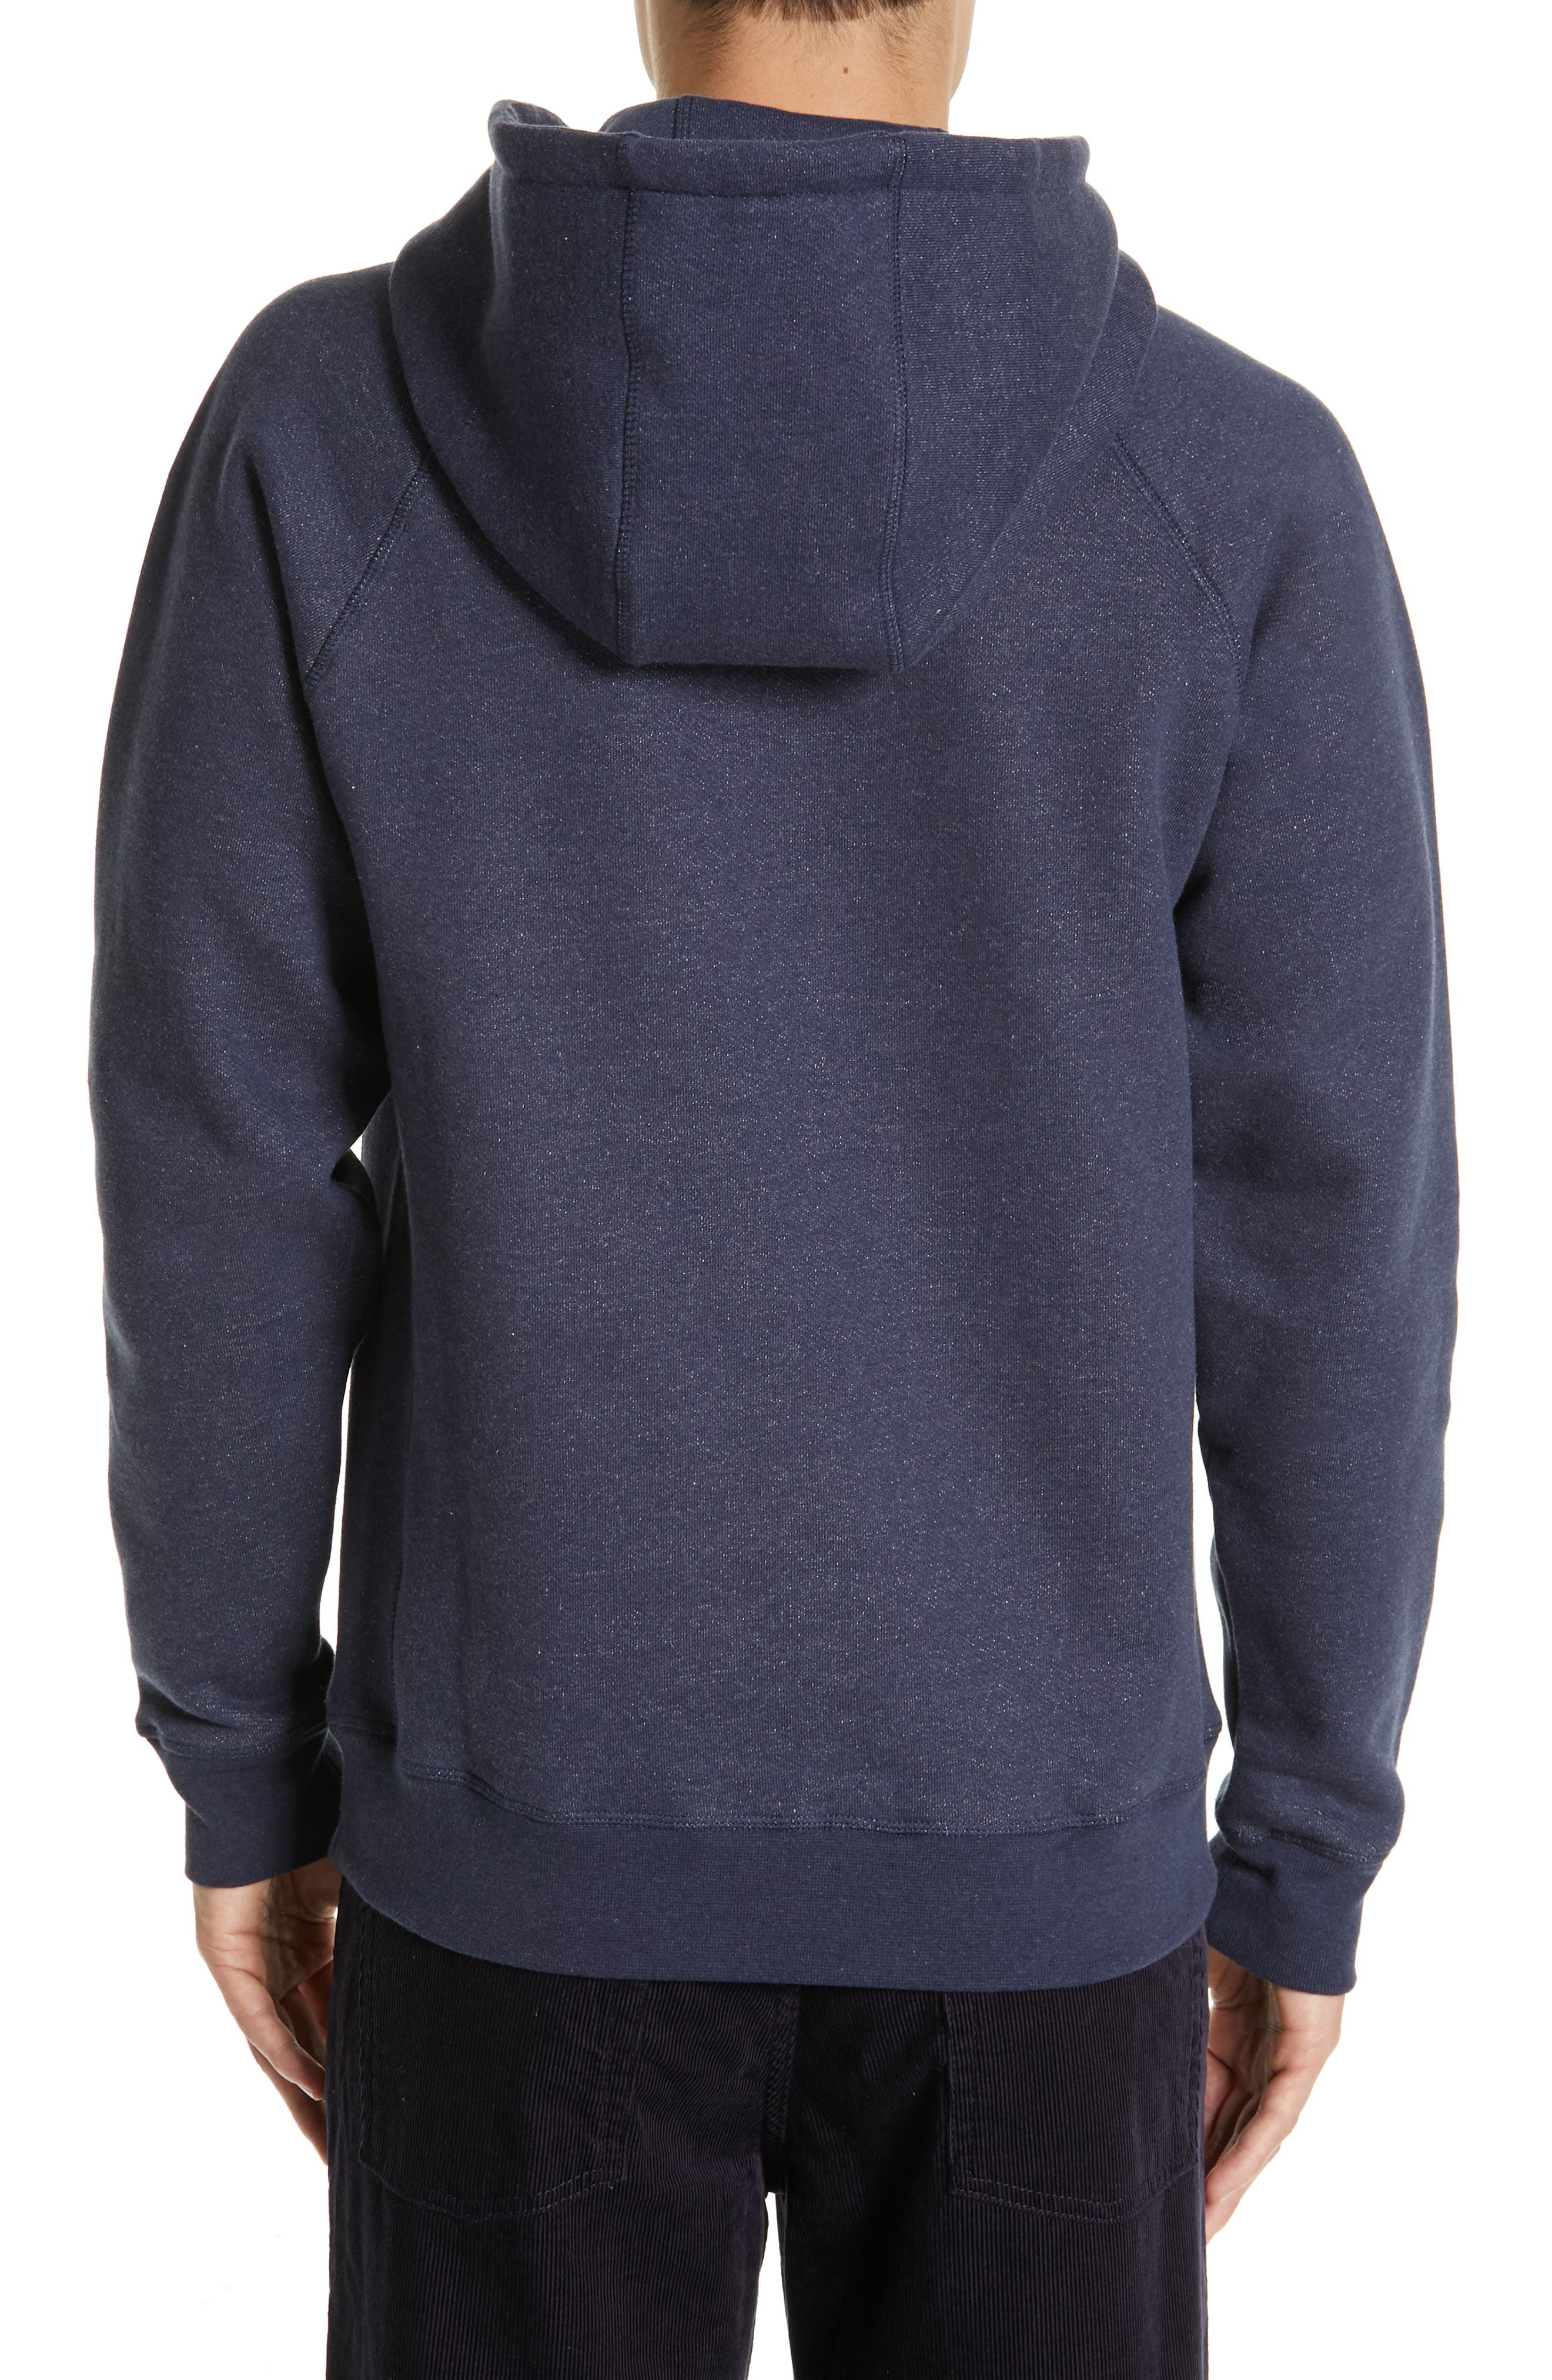 NORSE PROJECTS,                             Ketel Hoodie,                             Alternate thumbnail 2, color,                             DARK NAVY